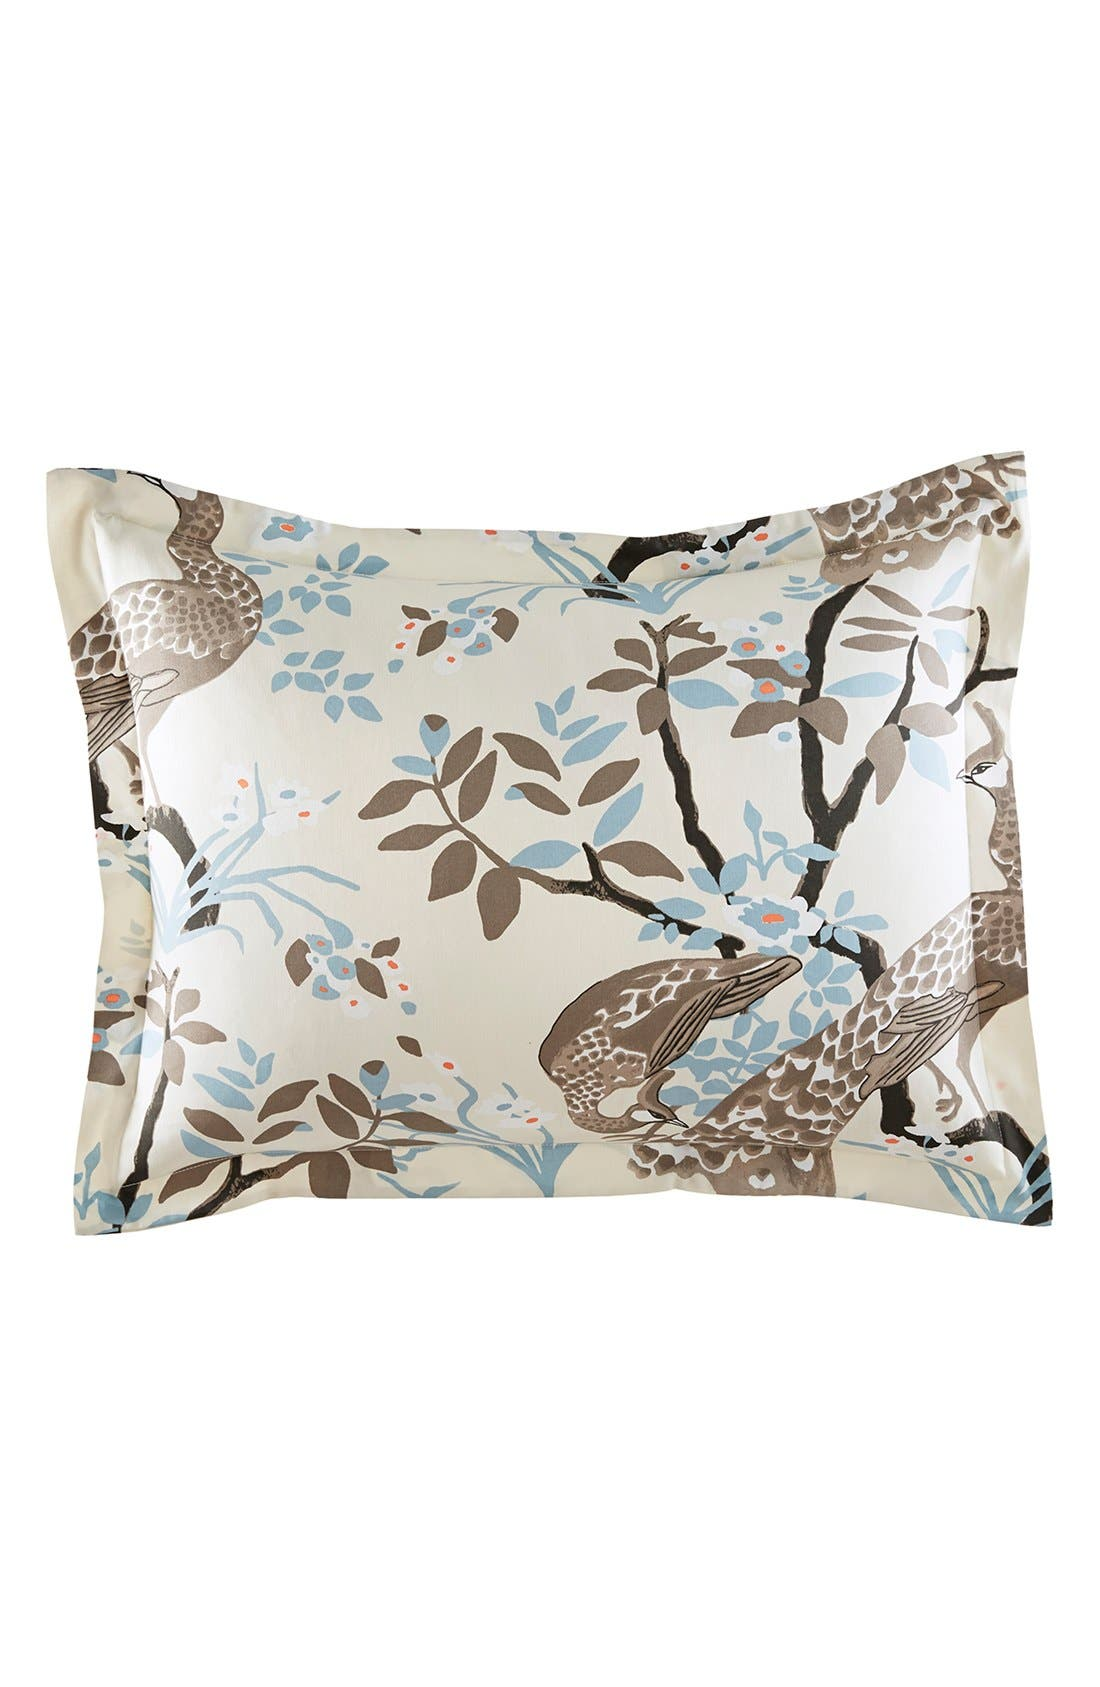 Alternate Image 1 Selected - DwellStudio 'Peacock' Shams (Set of 2)